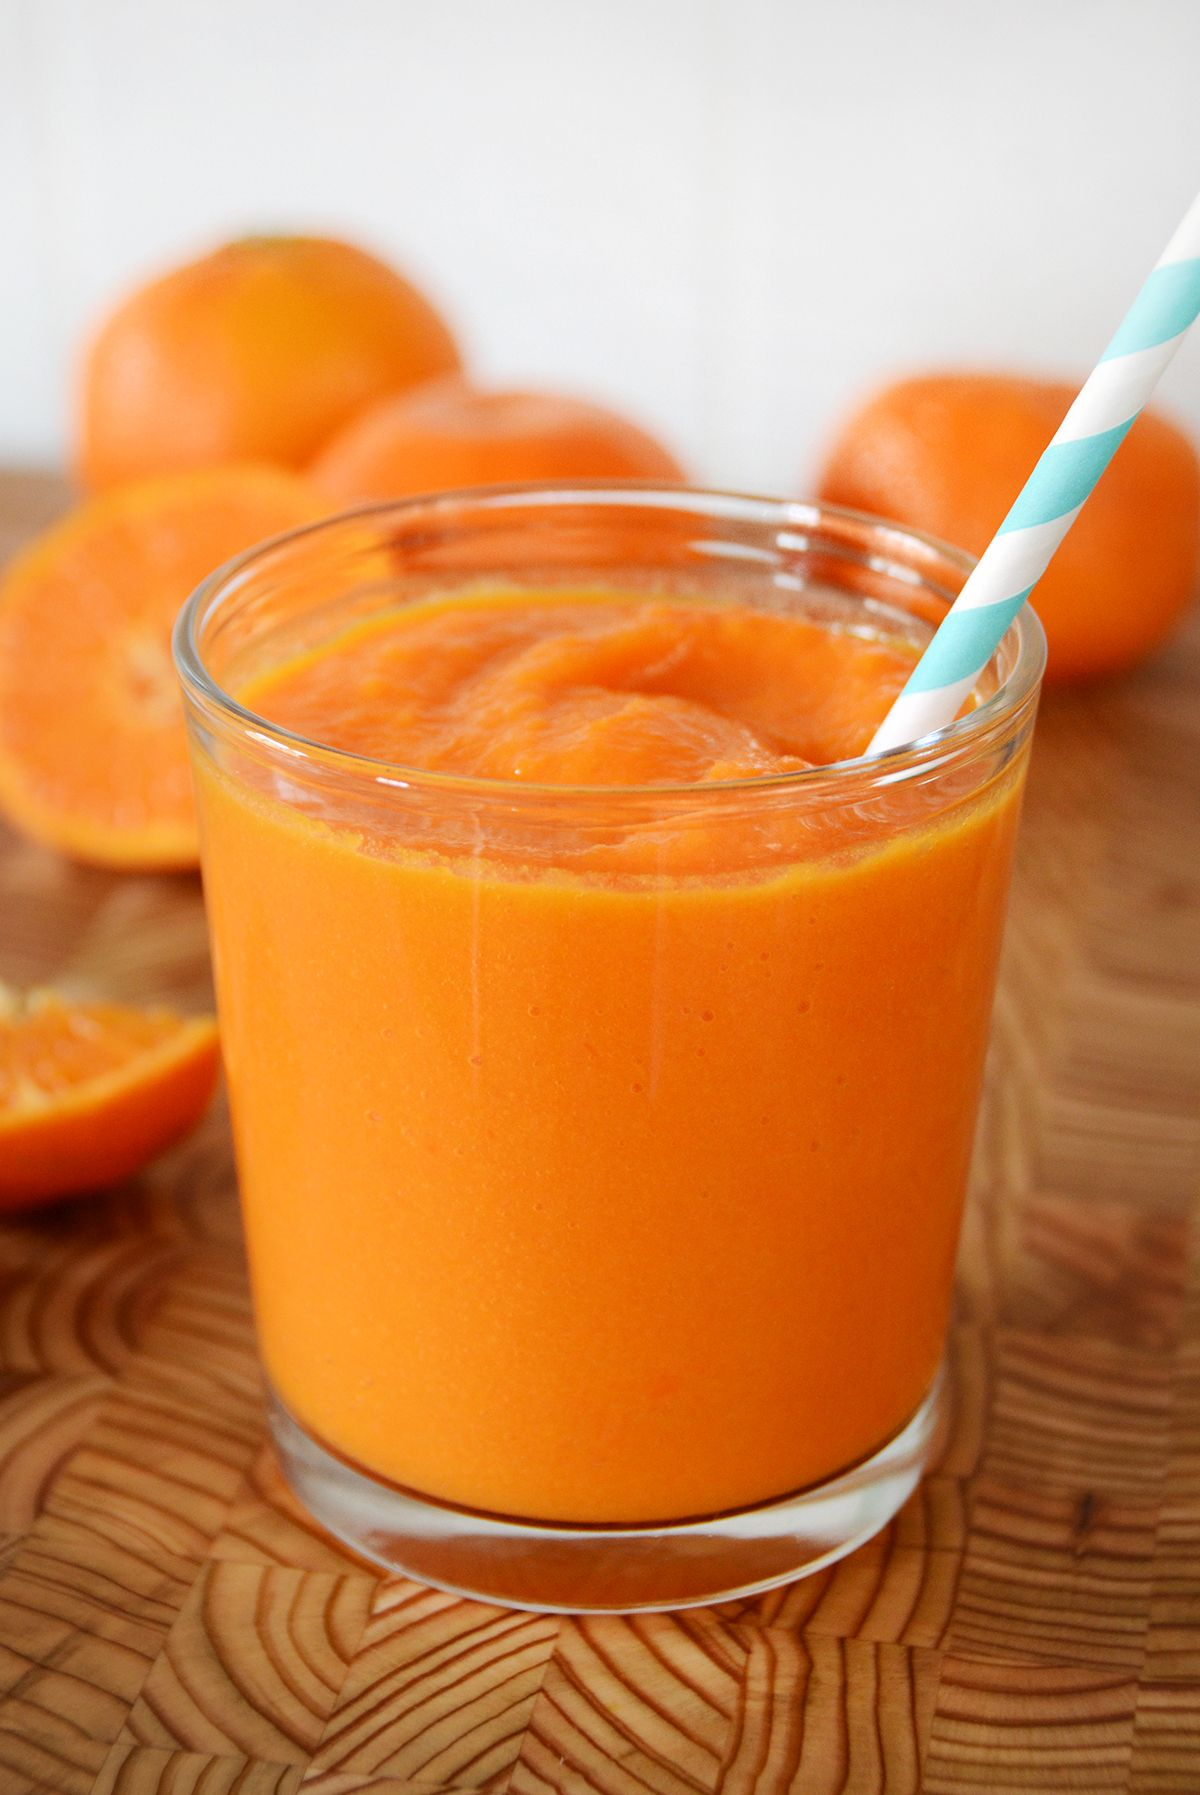 Delicious orange vegetable smoothie recipe